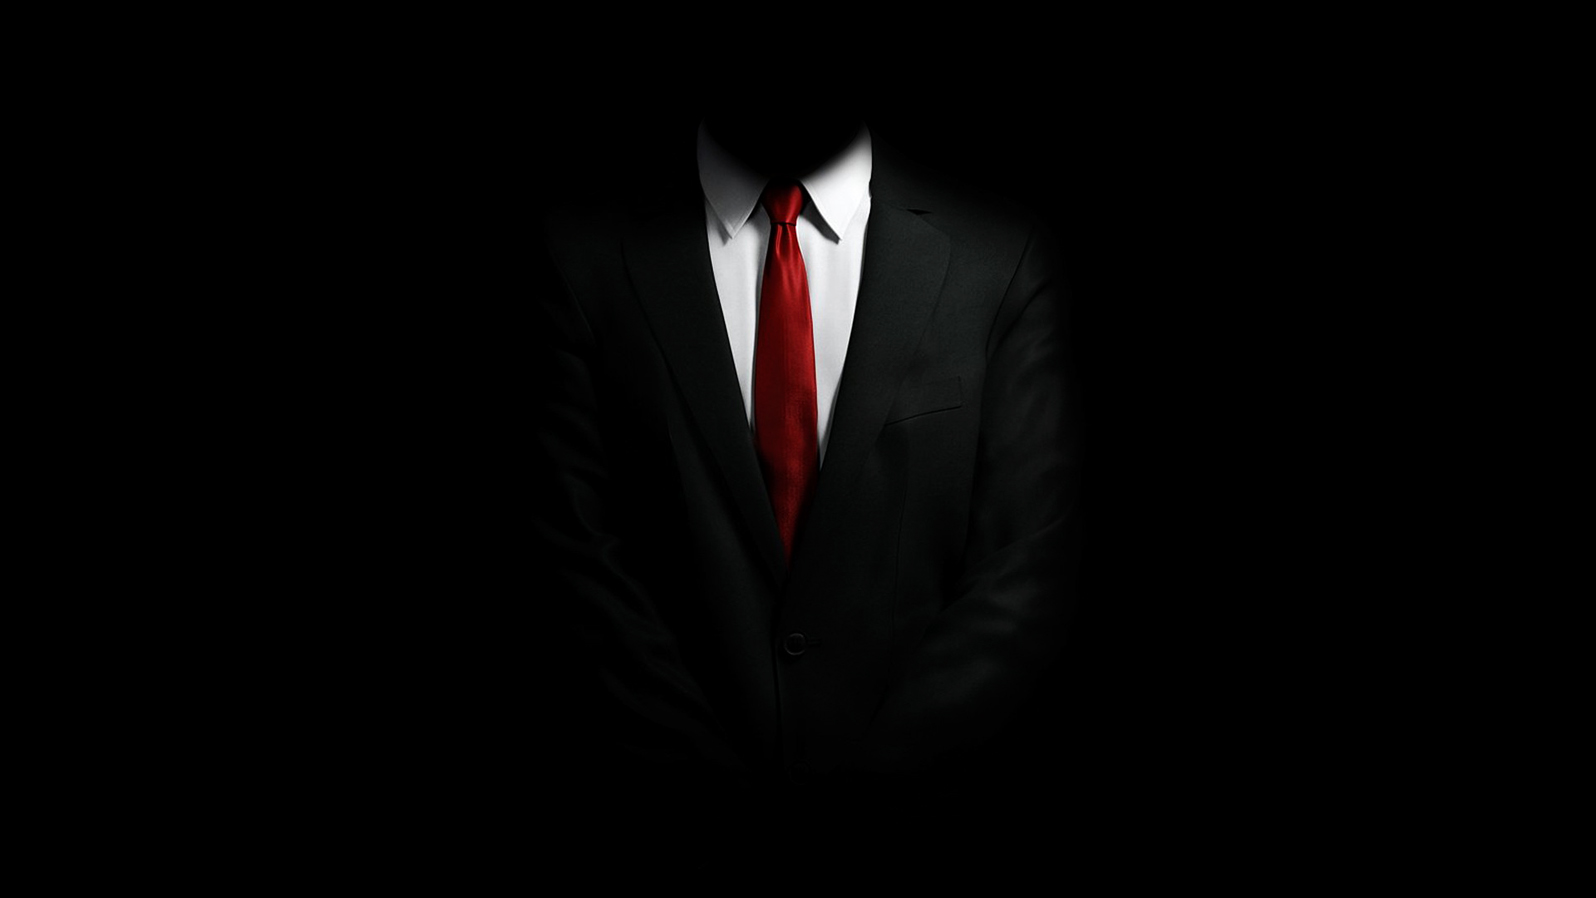 http://1.bp.blogspot.com/-LuUR5fHBVV4/UK9nM4ShVjI/AAAAAAAAGVw/C3-20Aq-z8Y/s1600/Hitman-Suit-Dark-HD-Wallpaper_Vvallpaper.Net.jpg